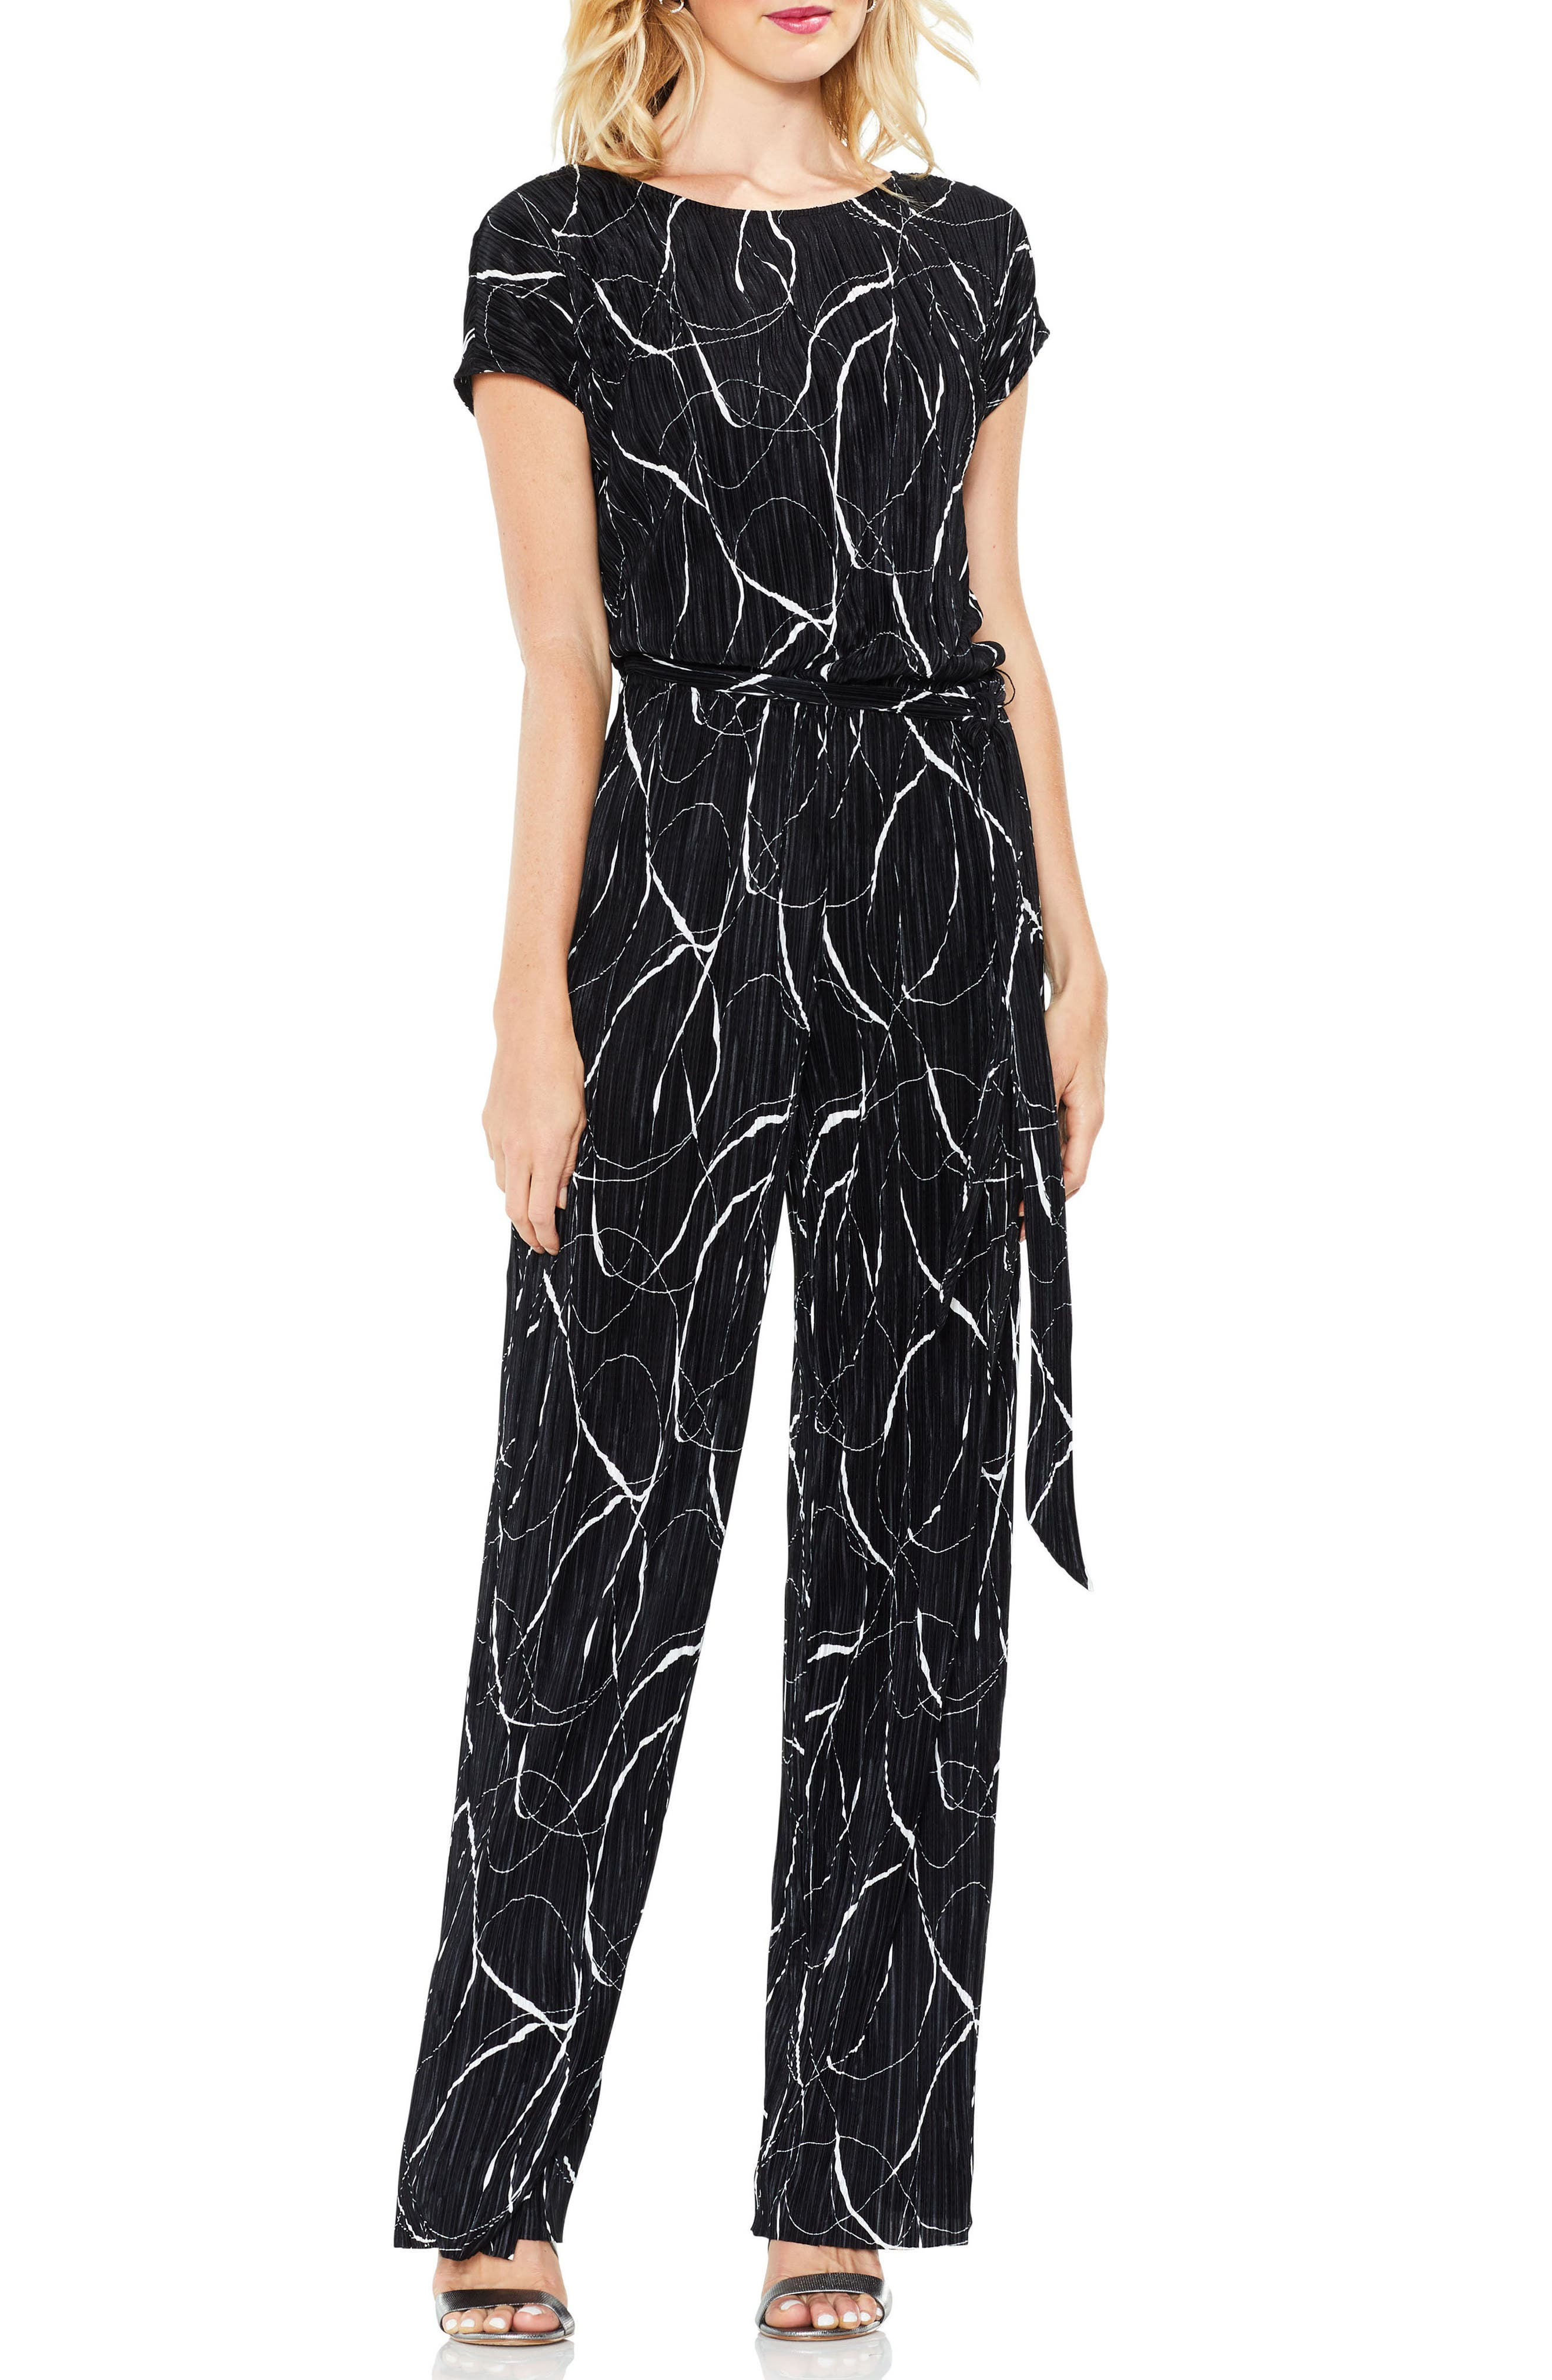 Main Image - Vince Camuto Ink Swirl Pleat Knit Jumpsuit